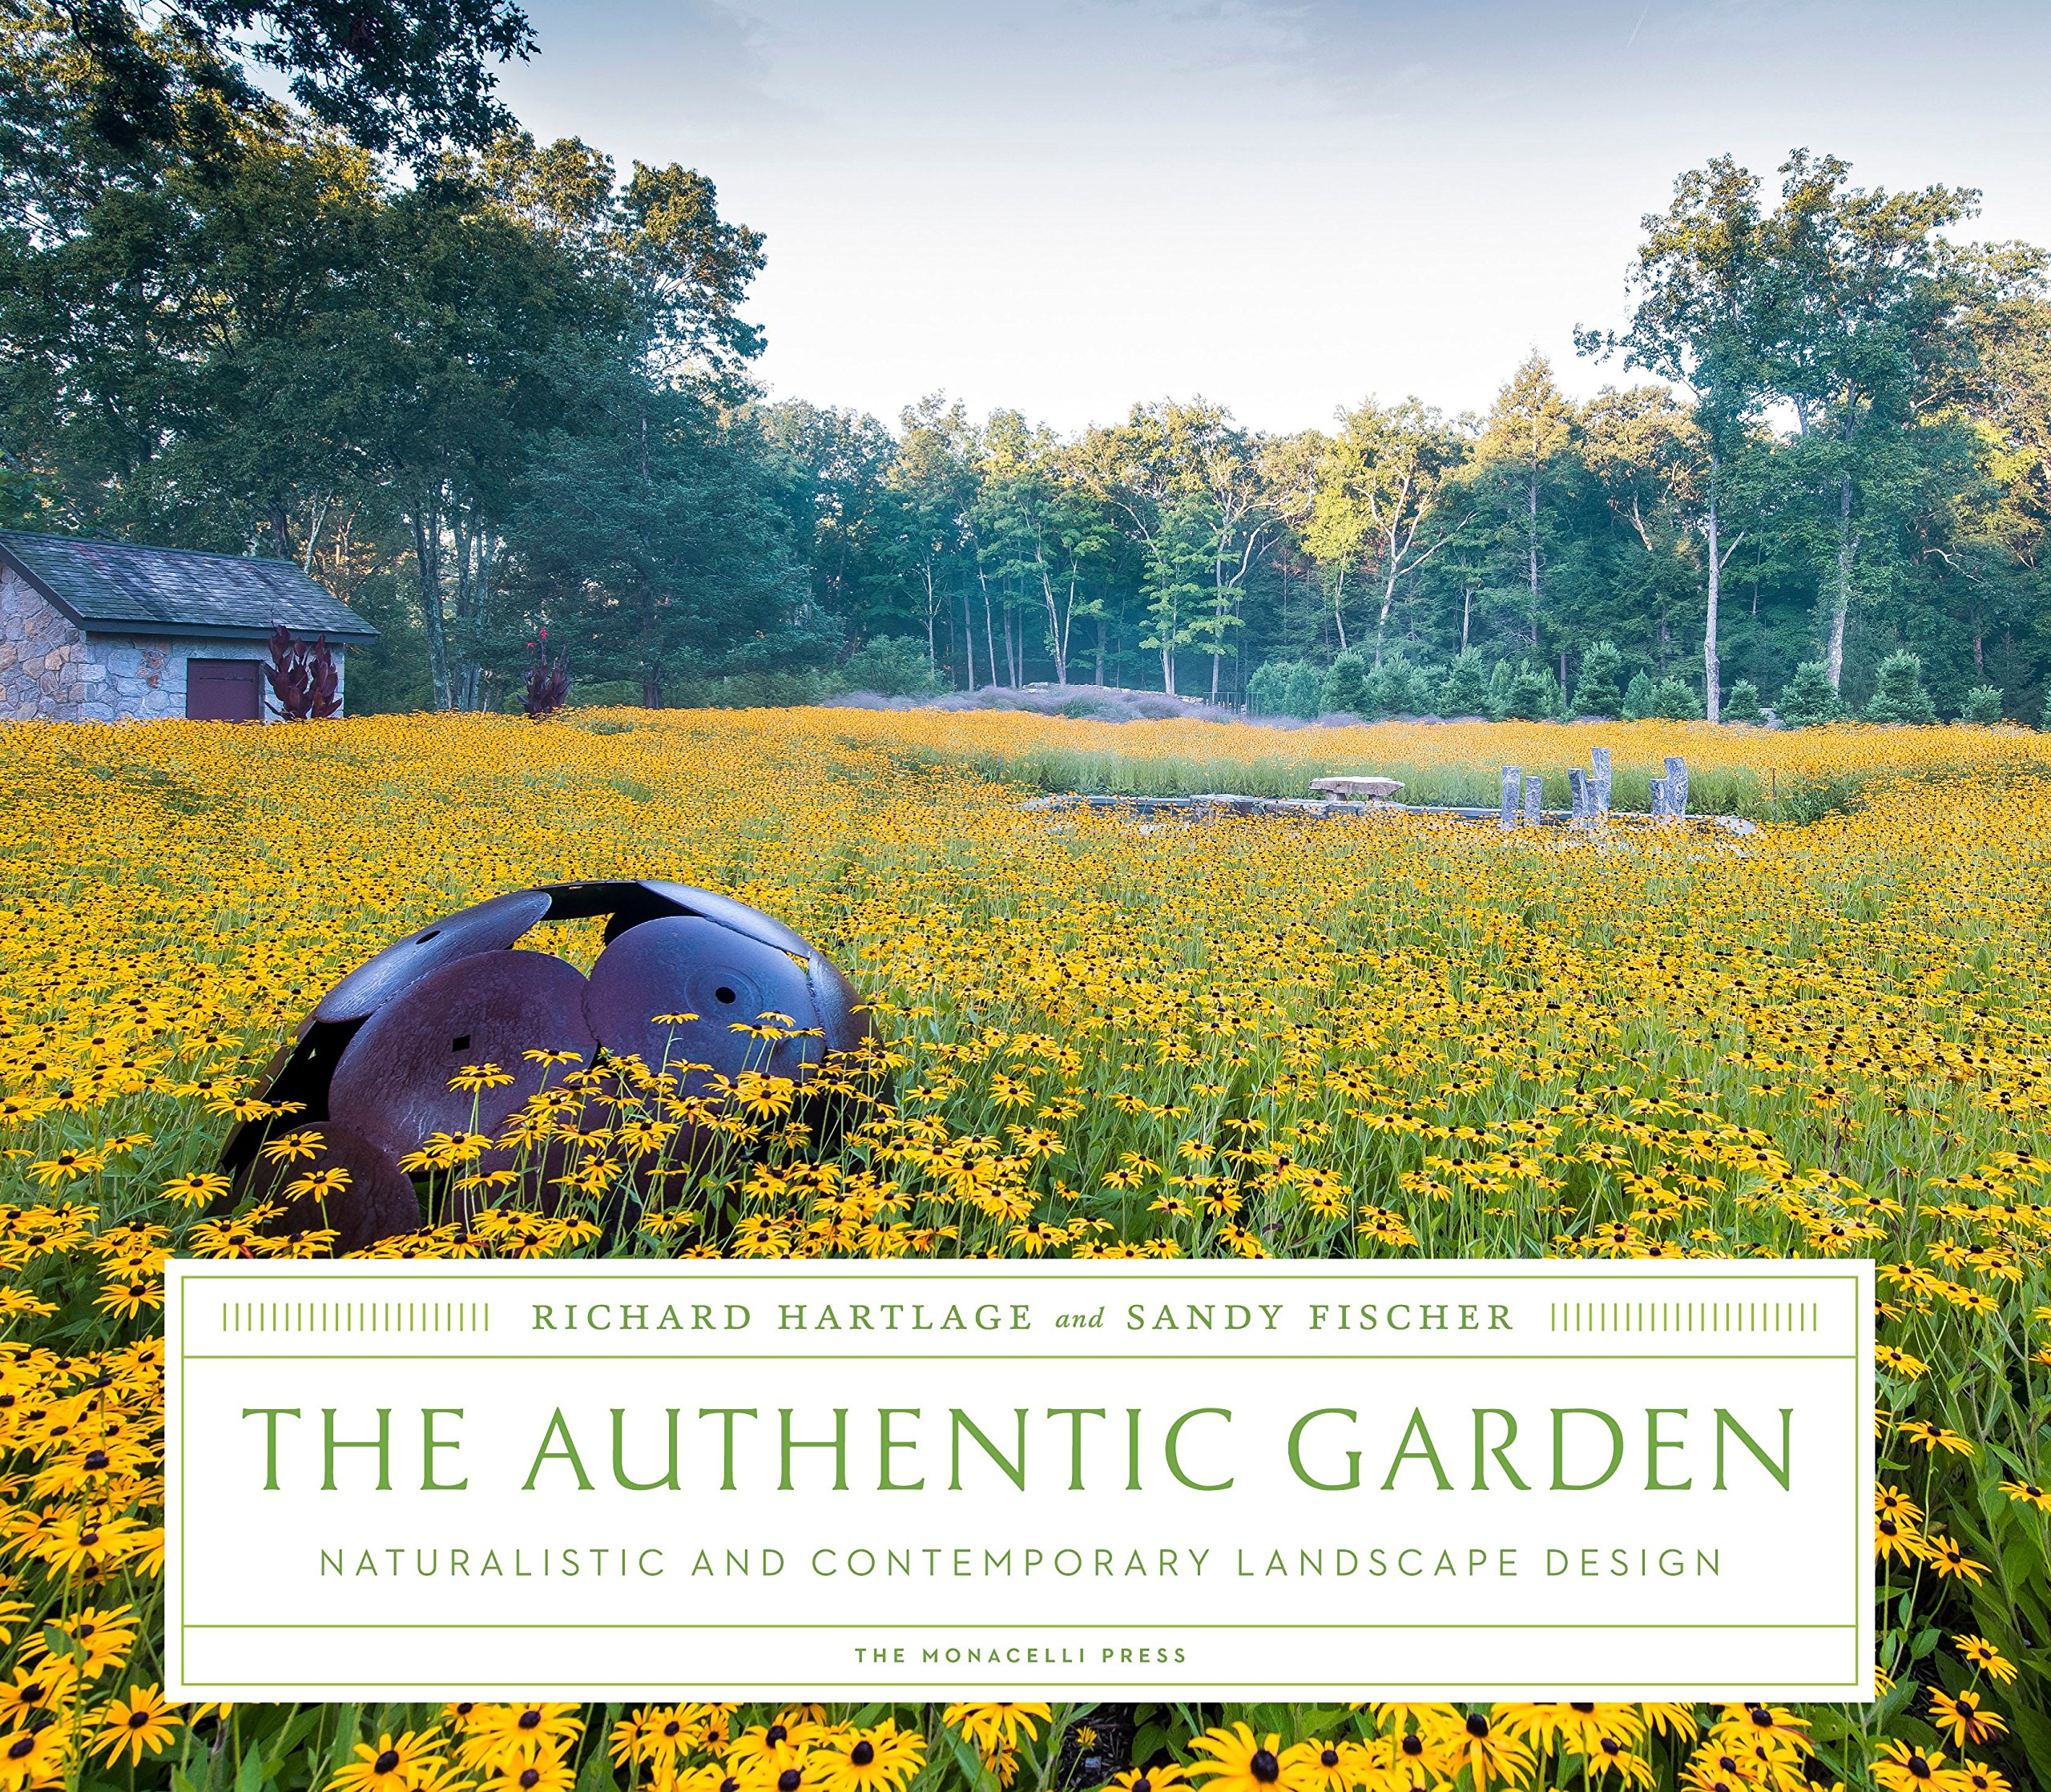 The Authentic Garden: Naturalistic And Contemporary Landscape Design  Hardcover U2013 November 17, 2015